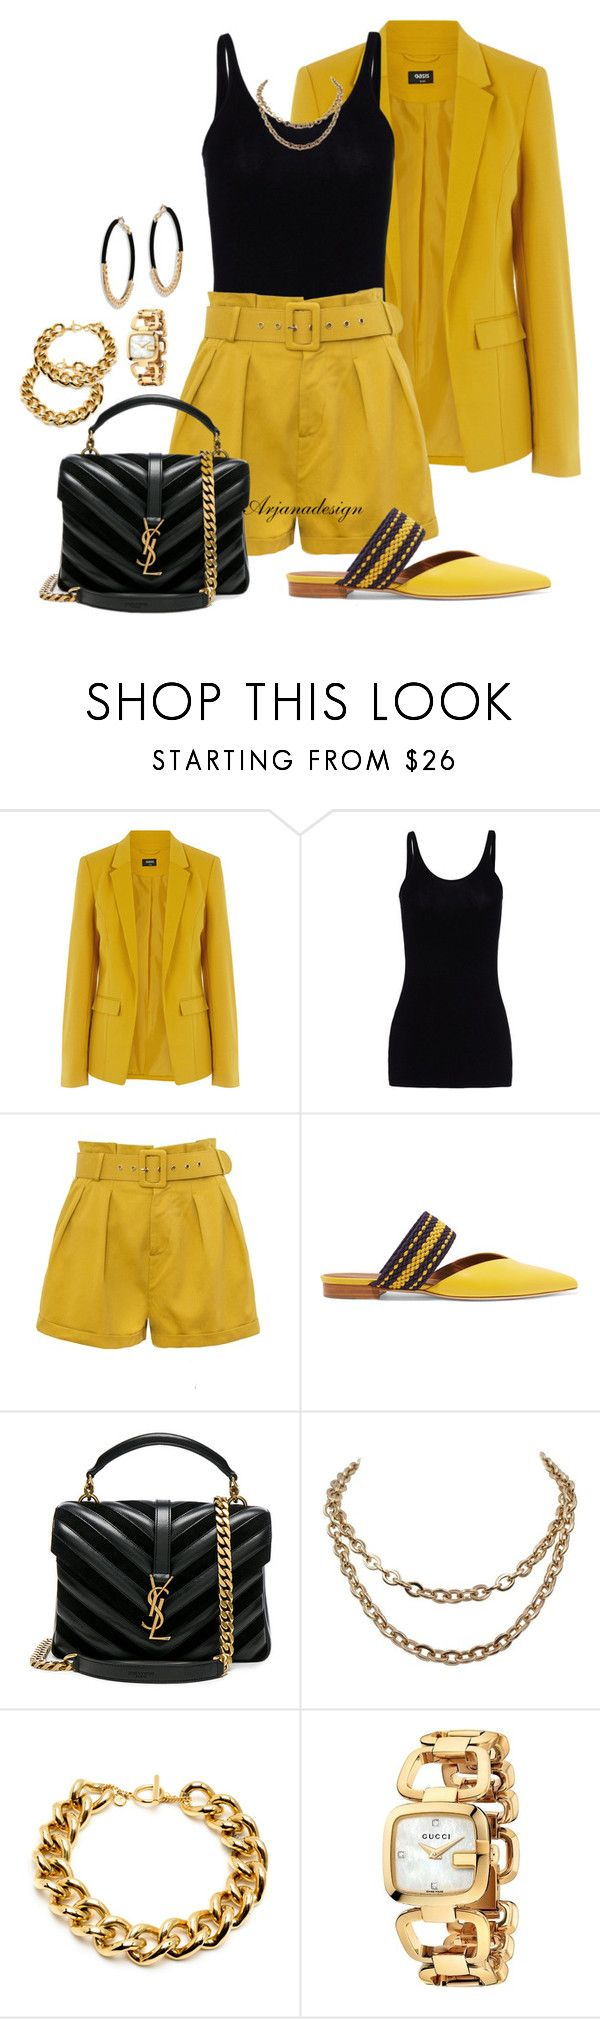 """DRESSY SHORTS"" by arjanadesign ❤ liked on Polyvore featuring Oasis, T By Alexander Wang, Malone Souliers, Yves Saint Laurent, Gucci, Ettika, shorts and roksanda"